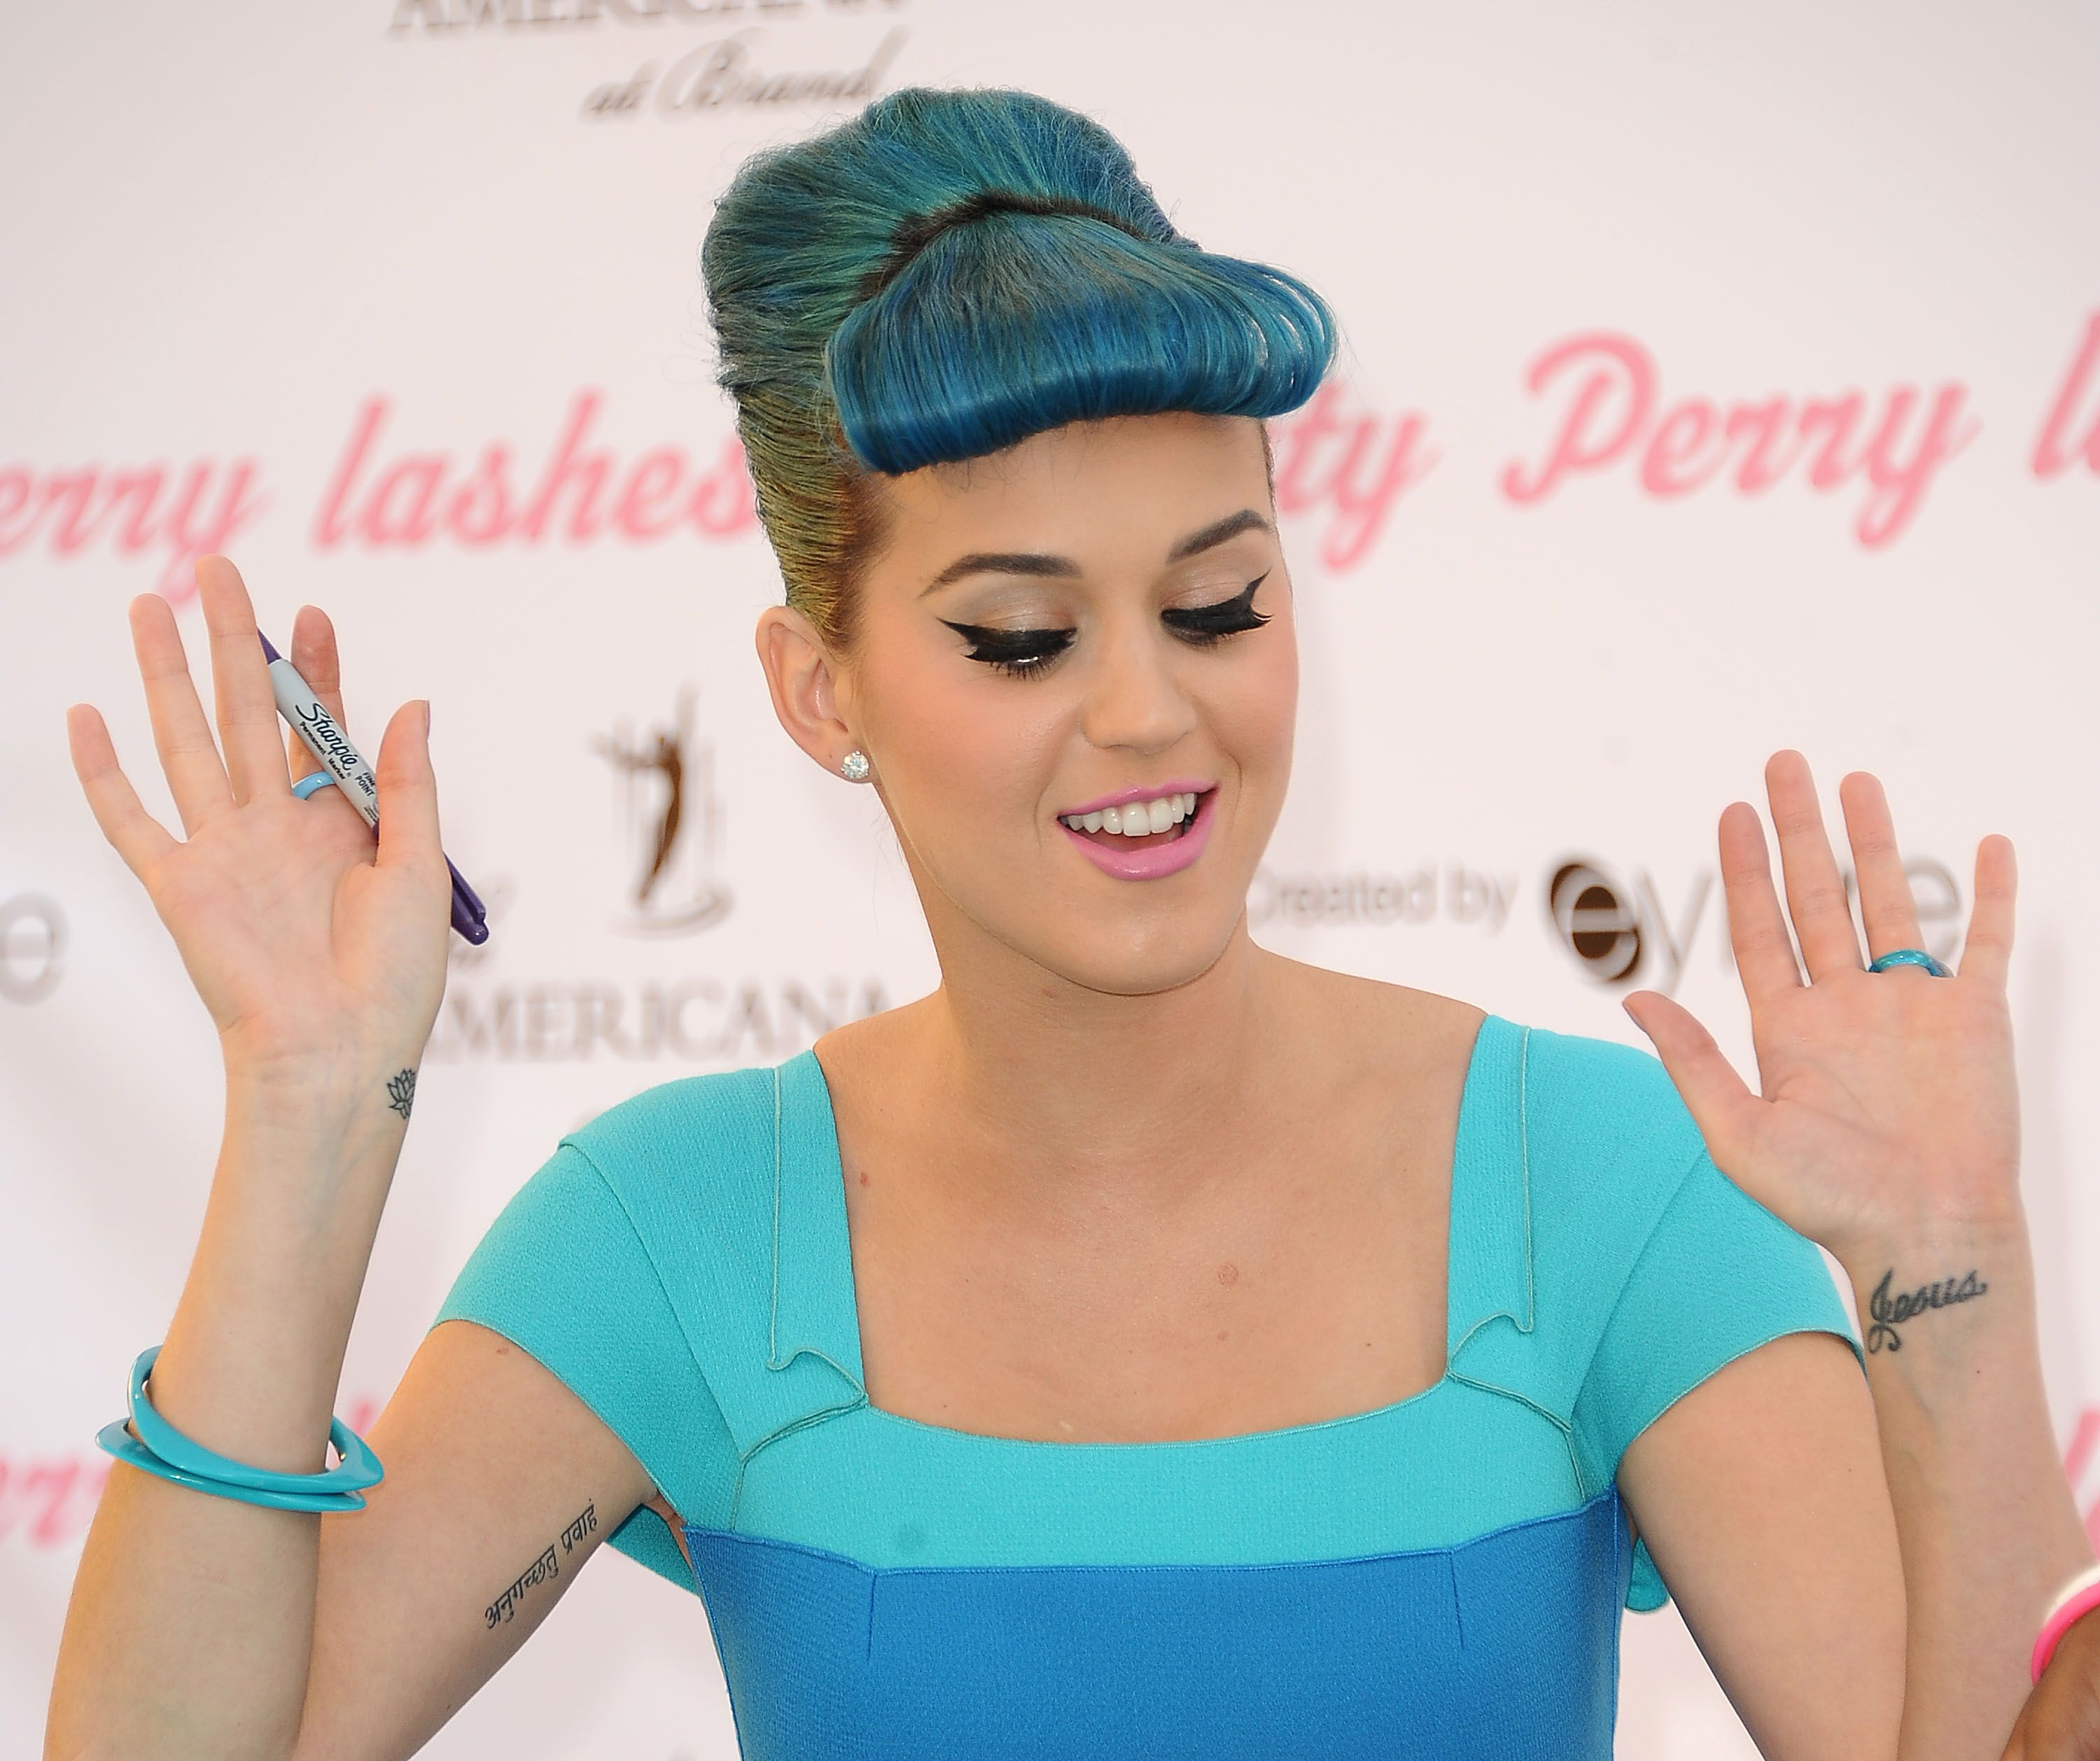 Katy Perry Launch Party For Her Exclusive False Lash Range By Eylure